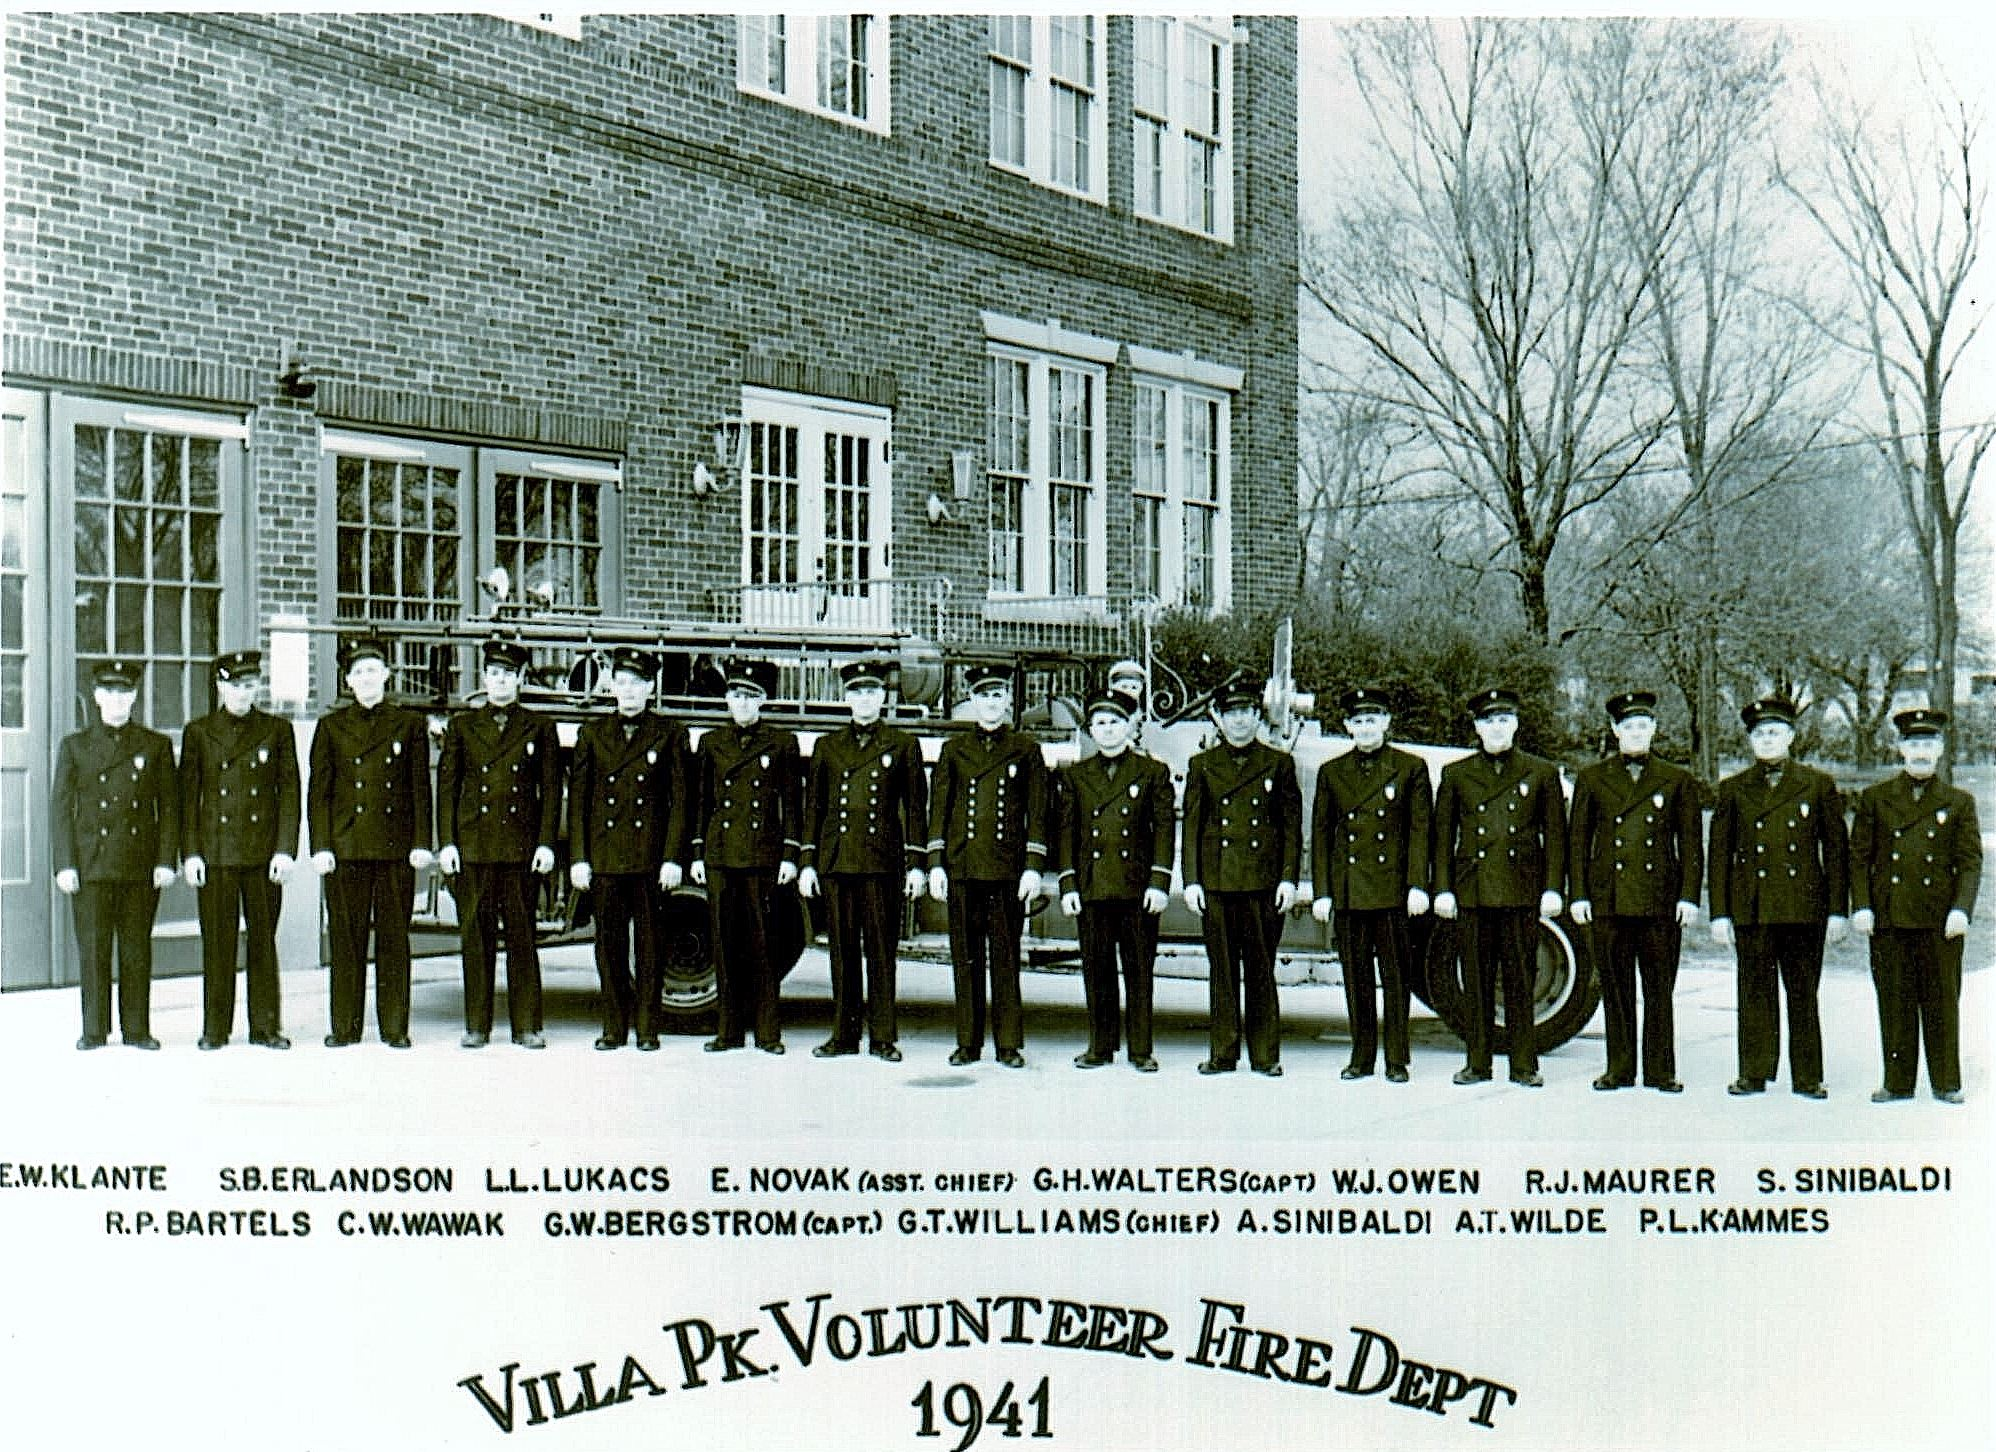 Villa Park Volunteer firefighters pose for photo in 1941.